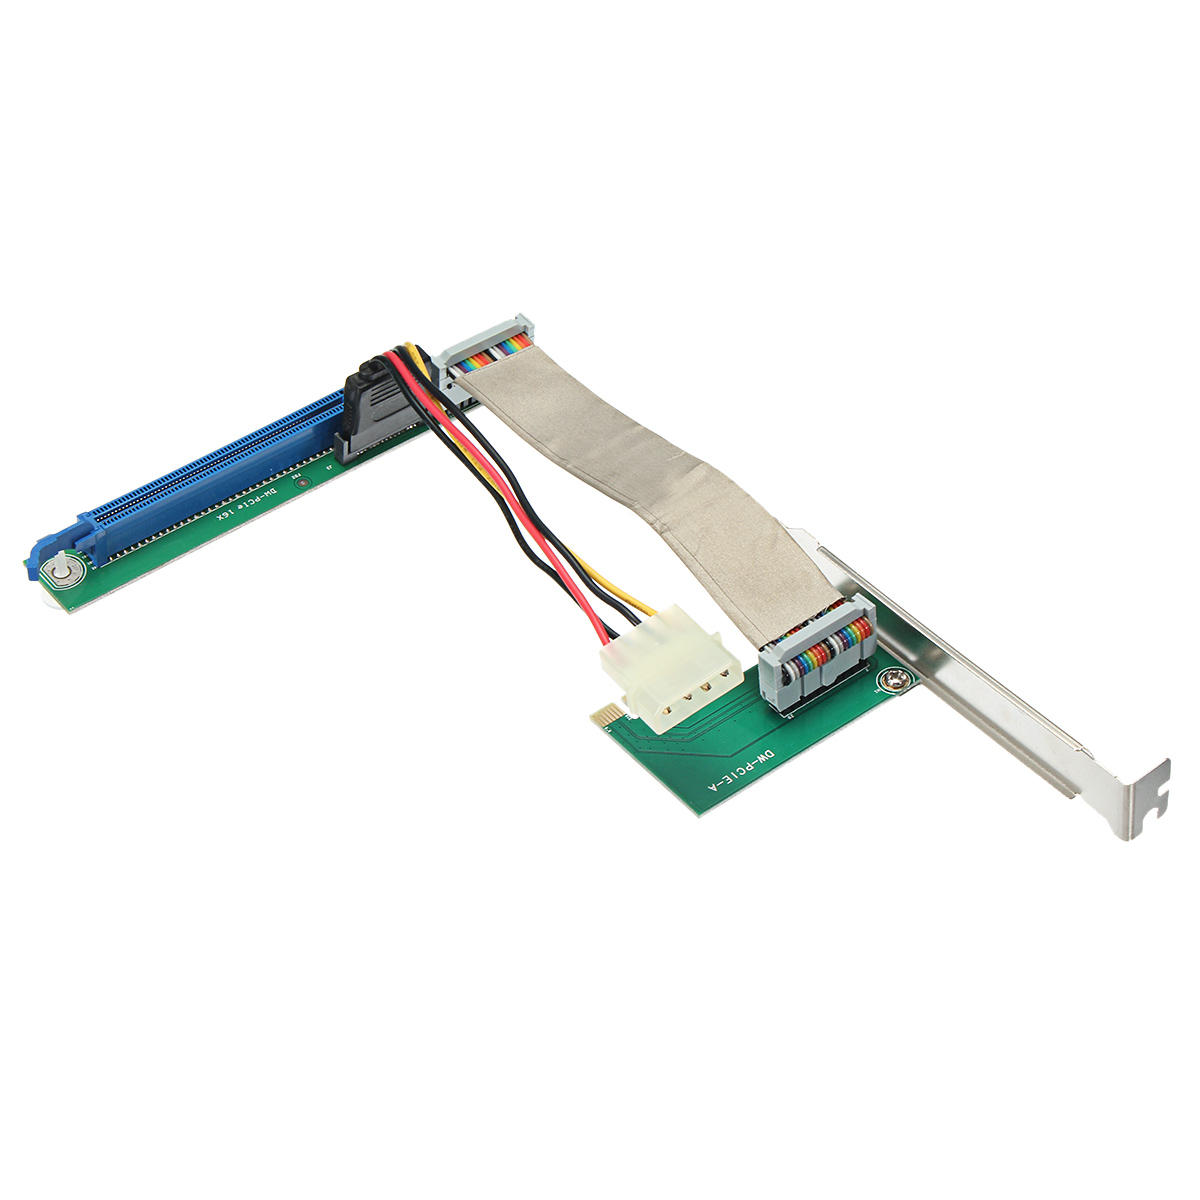 PCIE 1X To 16X 4 Pin Extender Riser Card Adapter Cable Card Cable For Miner